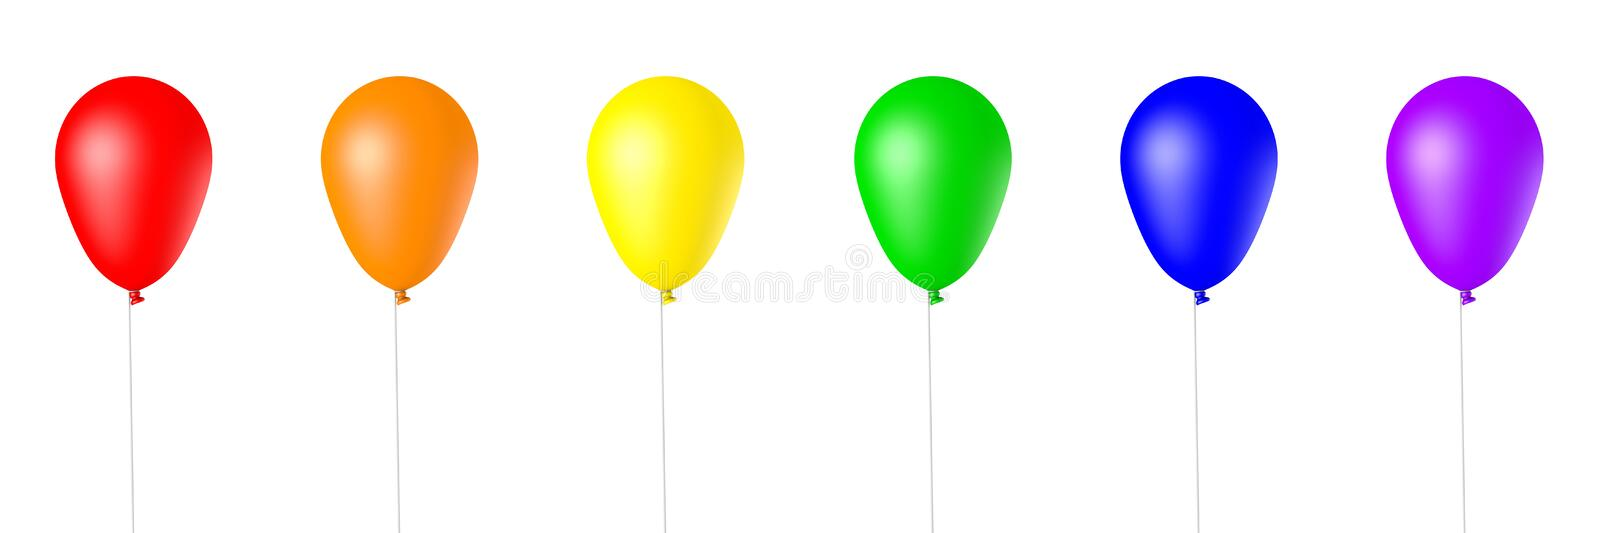 Isolated 3d Rendered Balloons stock illustration